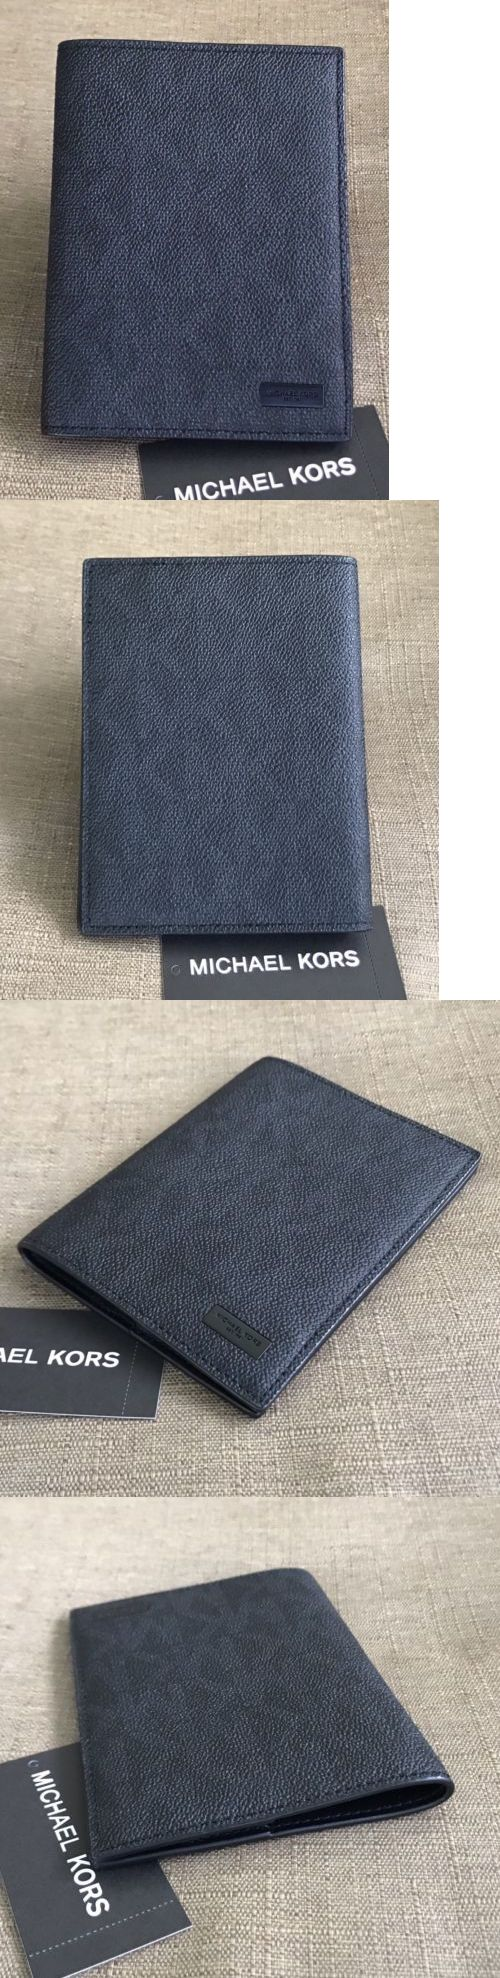 Passport and ID Holders 164795: Michael Kors Jet Set Signature Passport Cover Case(No Box) -> BUY IT NOW ONLY: $44.95 on eBay!